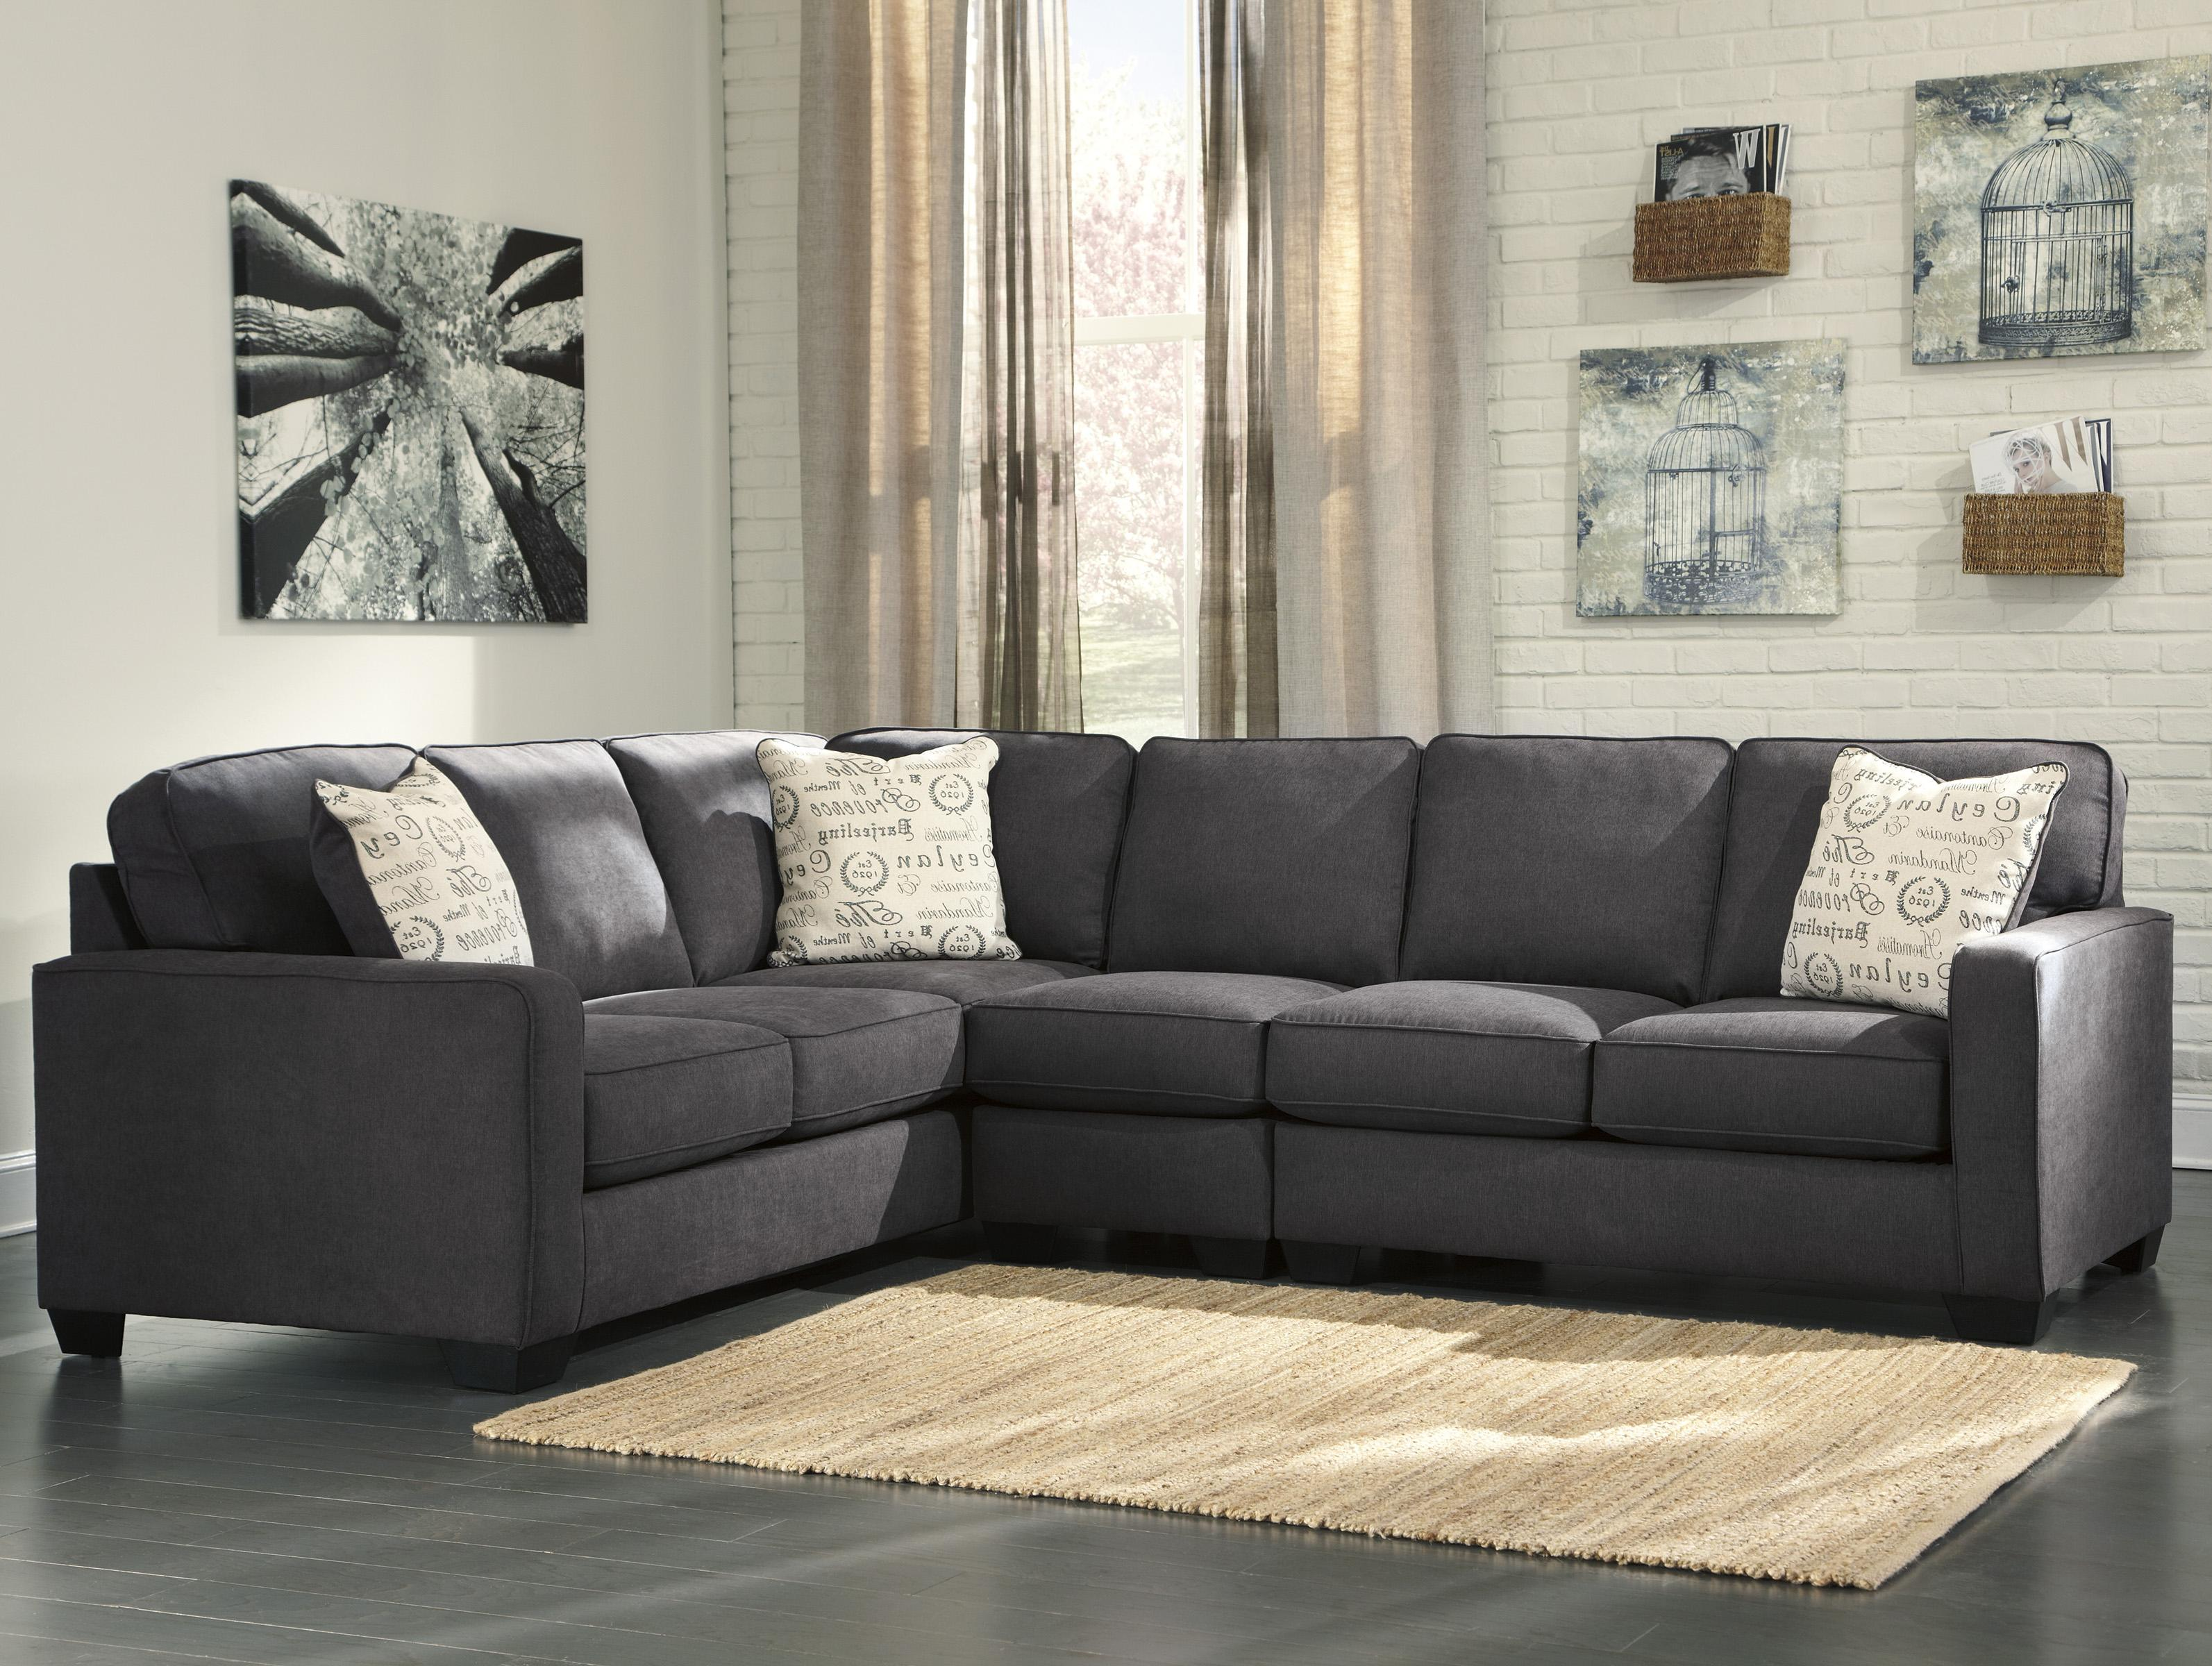 Ashley Signature Design Alenya - Charcoal 3-Piece Sectional with Right Loveseat - Item Number : sectional or sofa and loveseat - Sectionals, Sofas & Couches